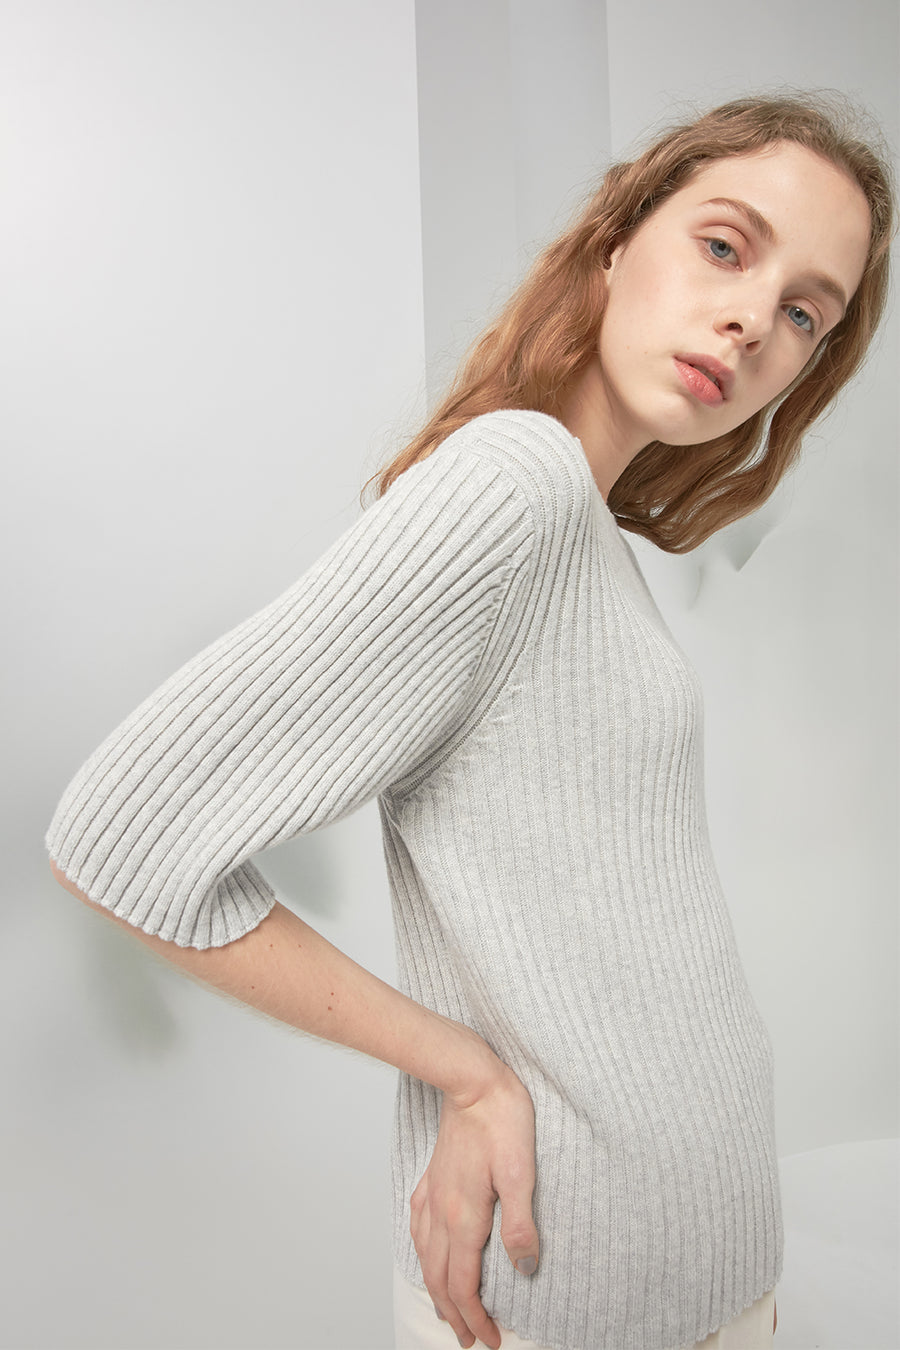 Cashmere and cotton-blend sweater - Zelle Studio